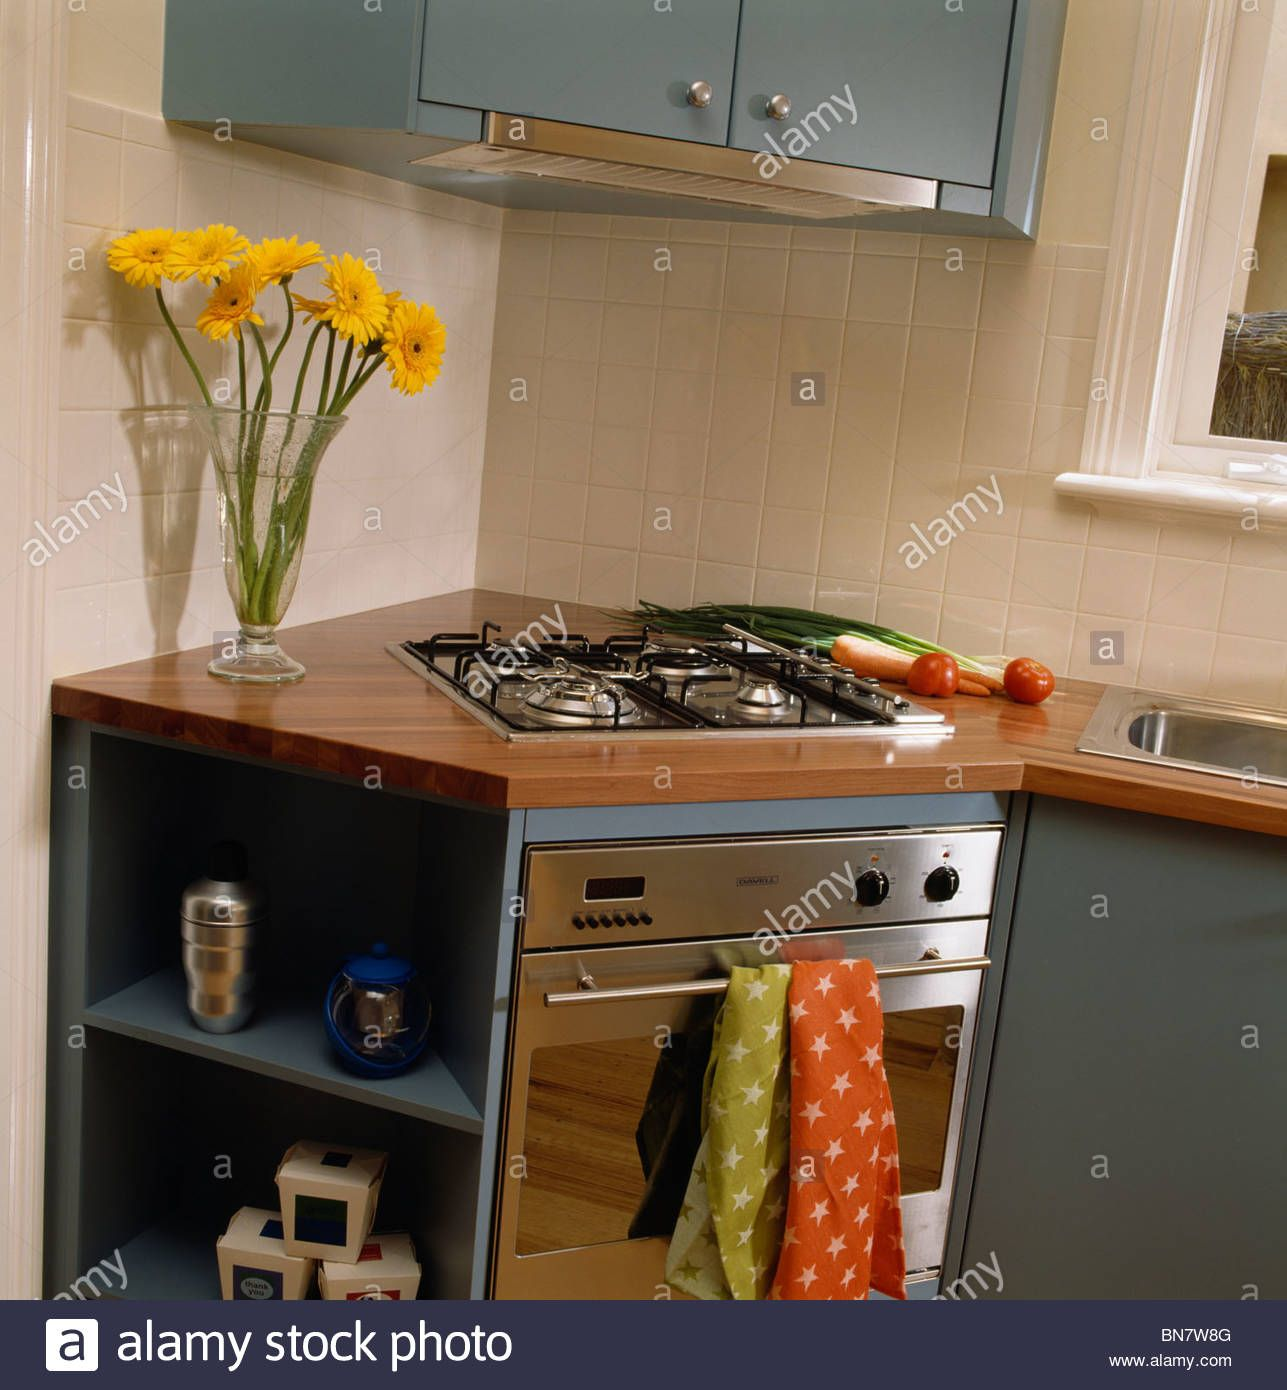 Hob And Oven In Fitted Corner Unit In Modern Kitchen Stock